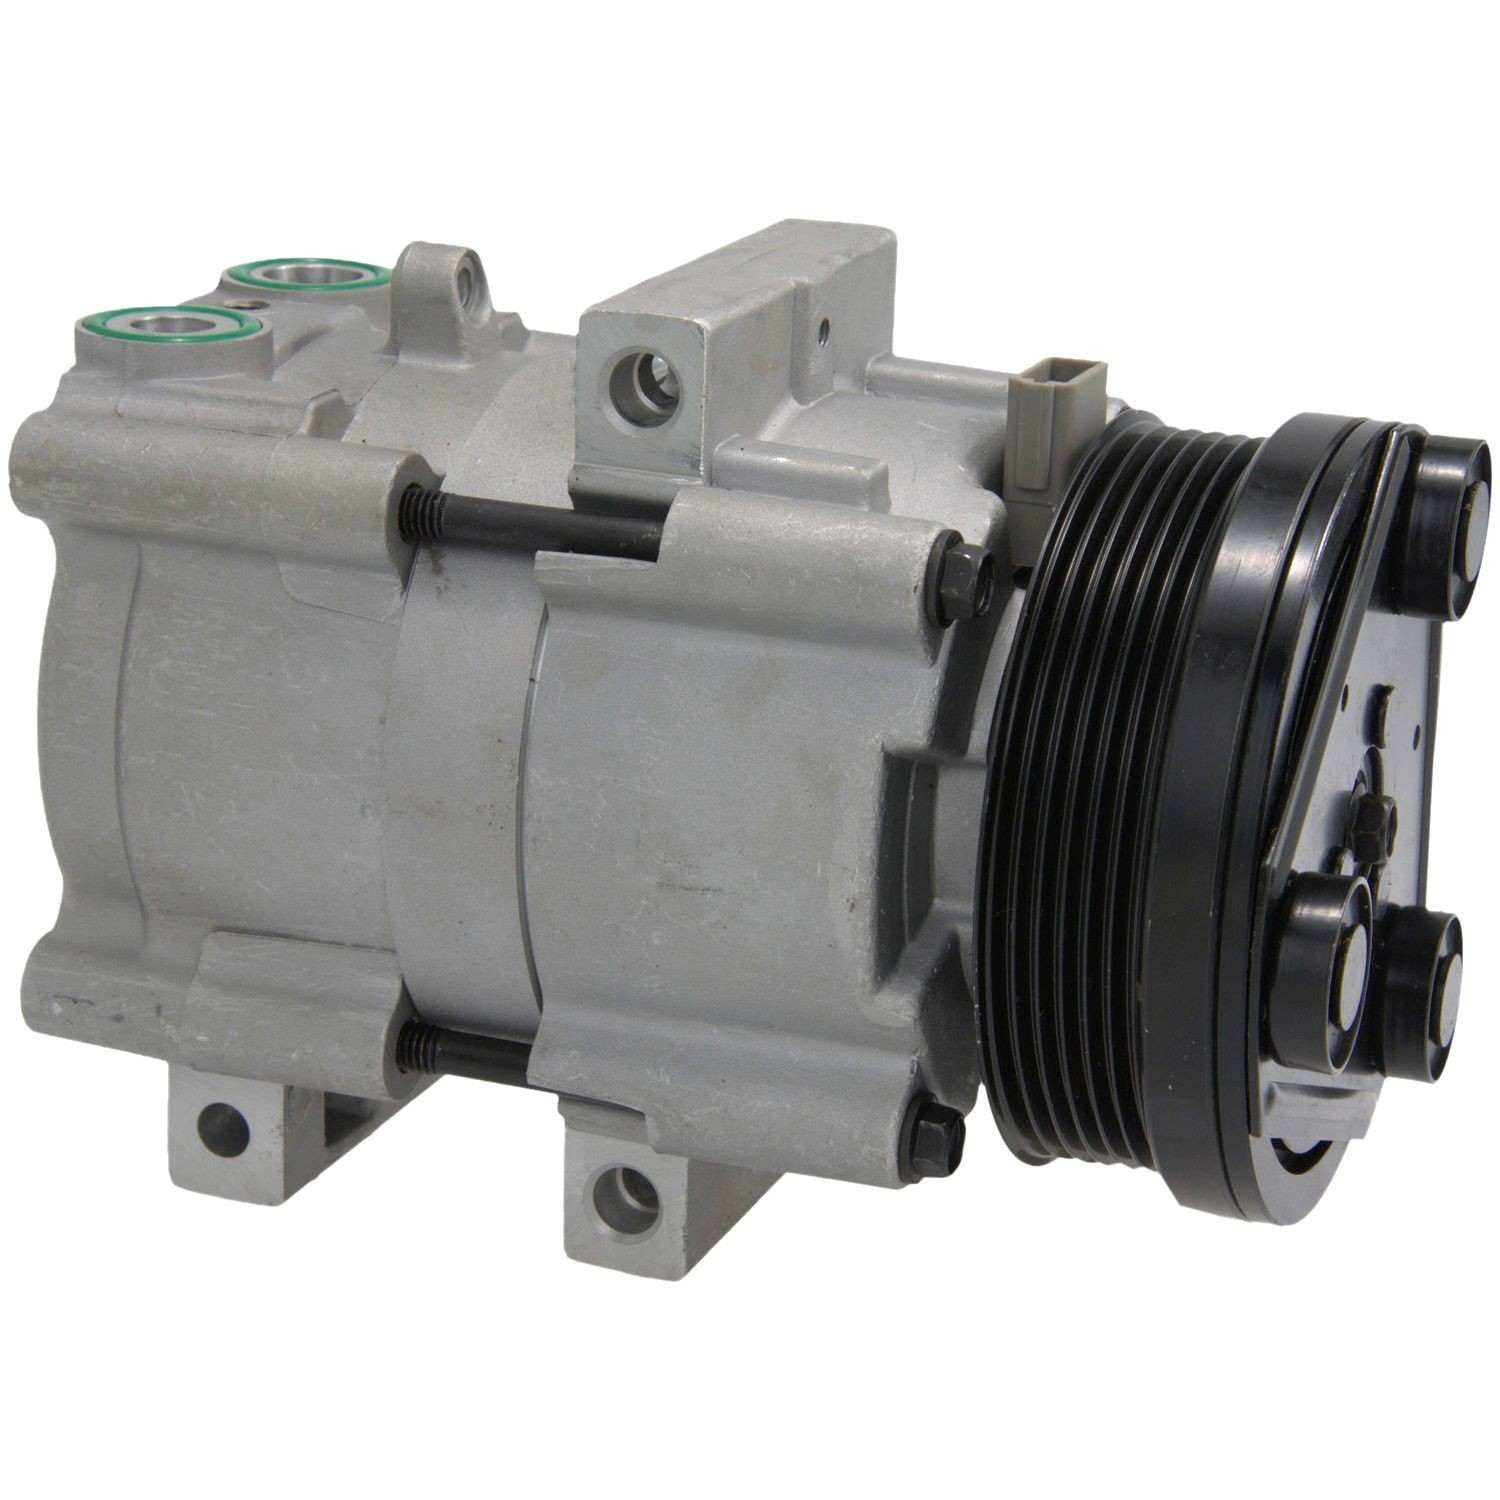 MAGNETI MARELLI OFFERED BY MOPAR - New Compressor - MGM 1AMAC00006